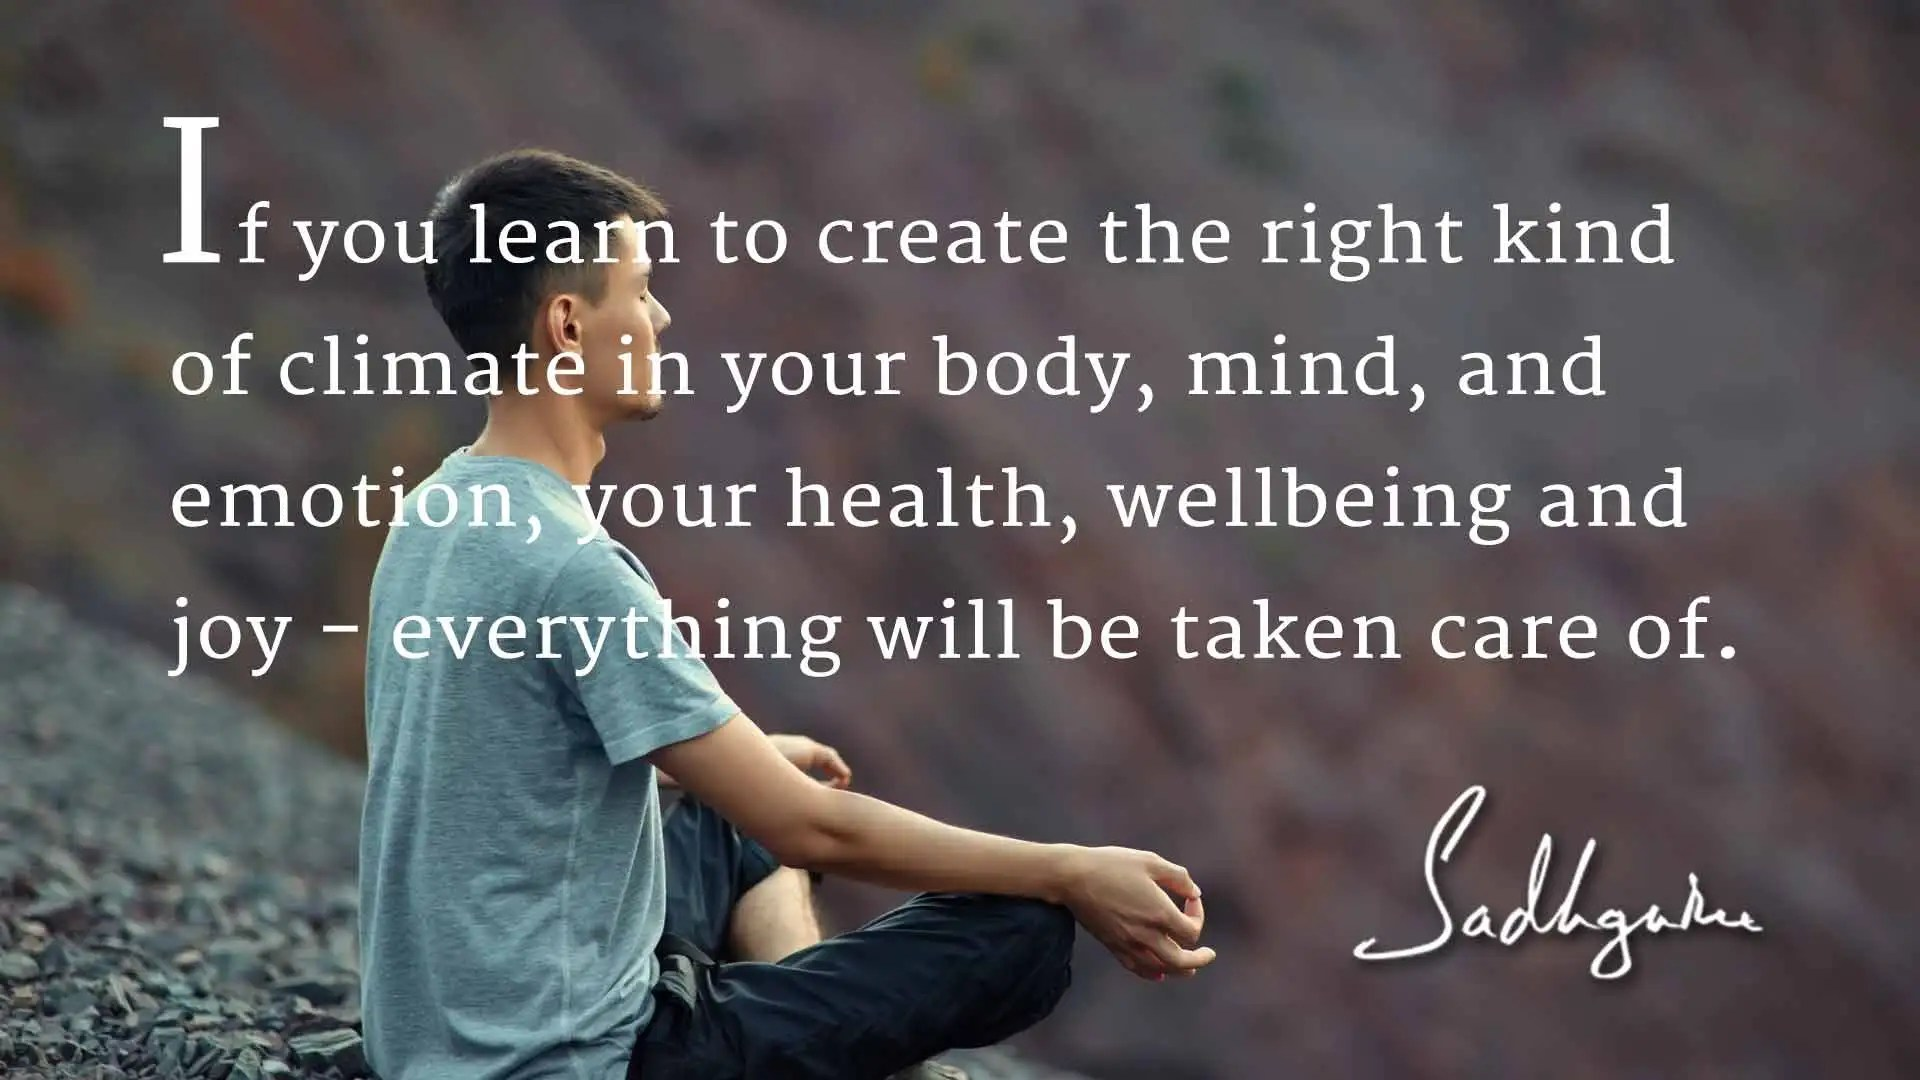 Love Quote Images Wallpaper Health And Wellbeing 4 Sadhguru Quotes The Isha Blog